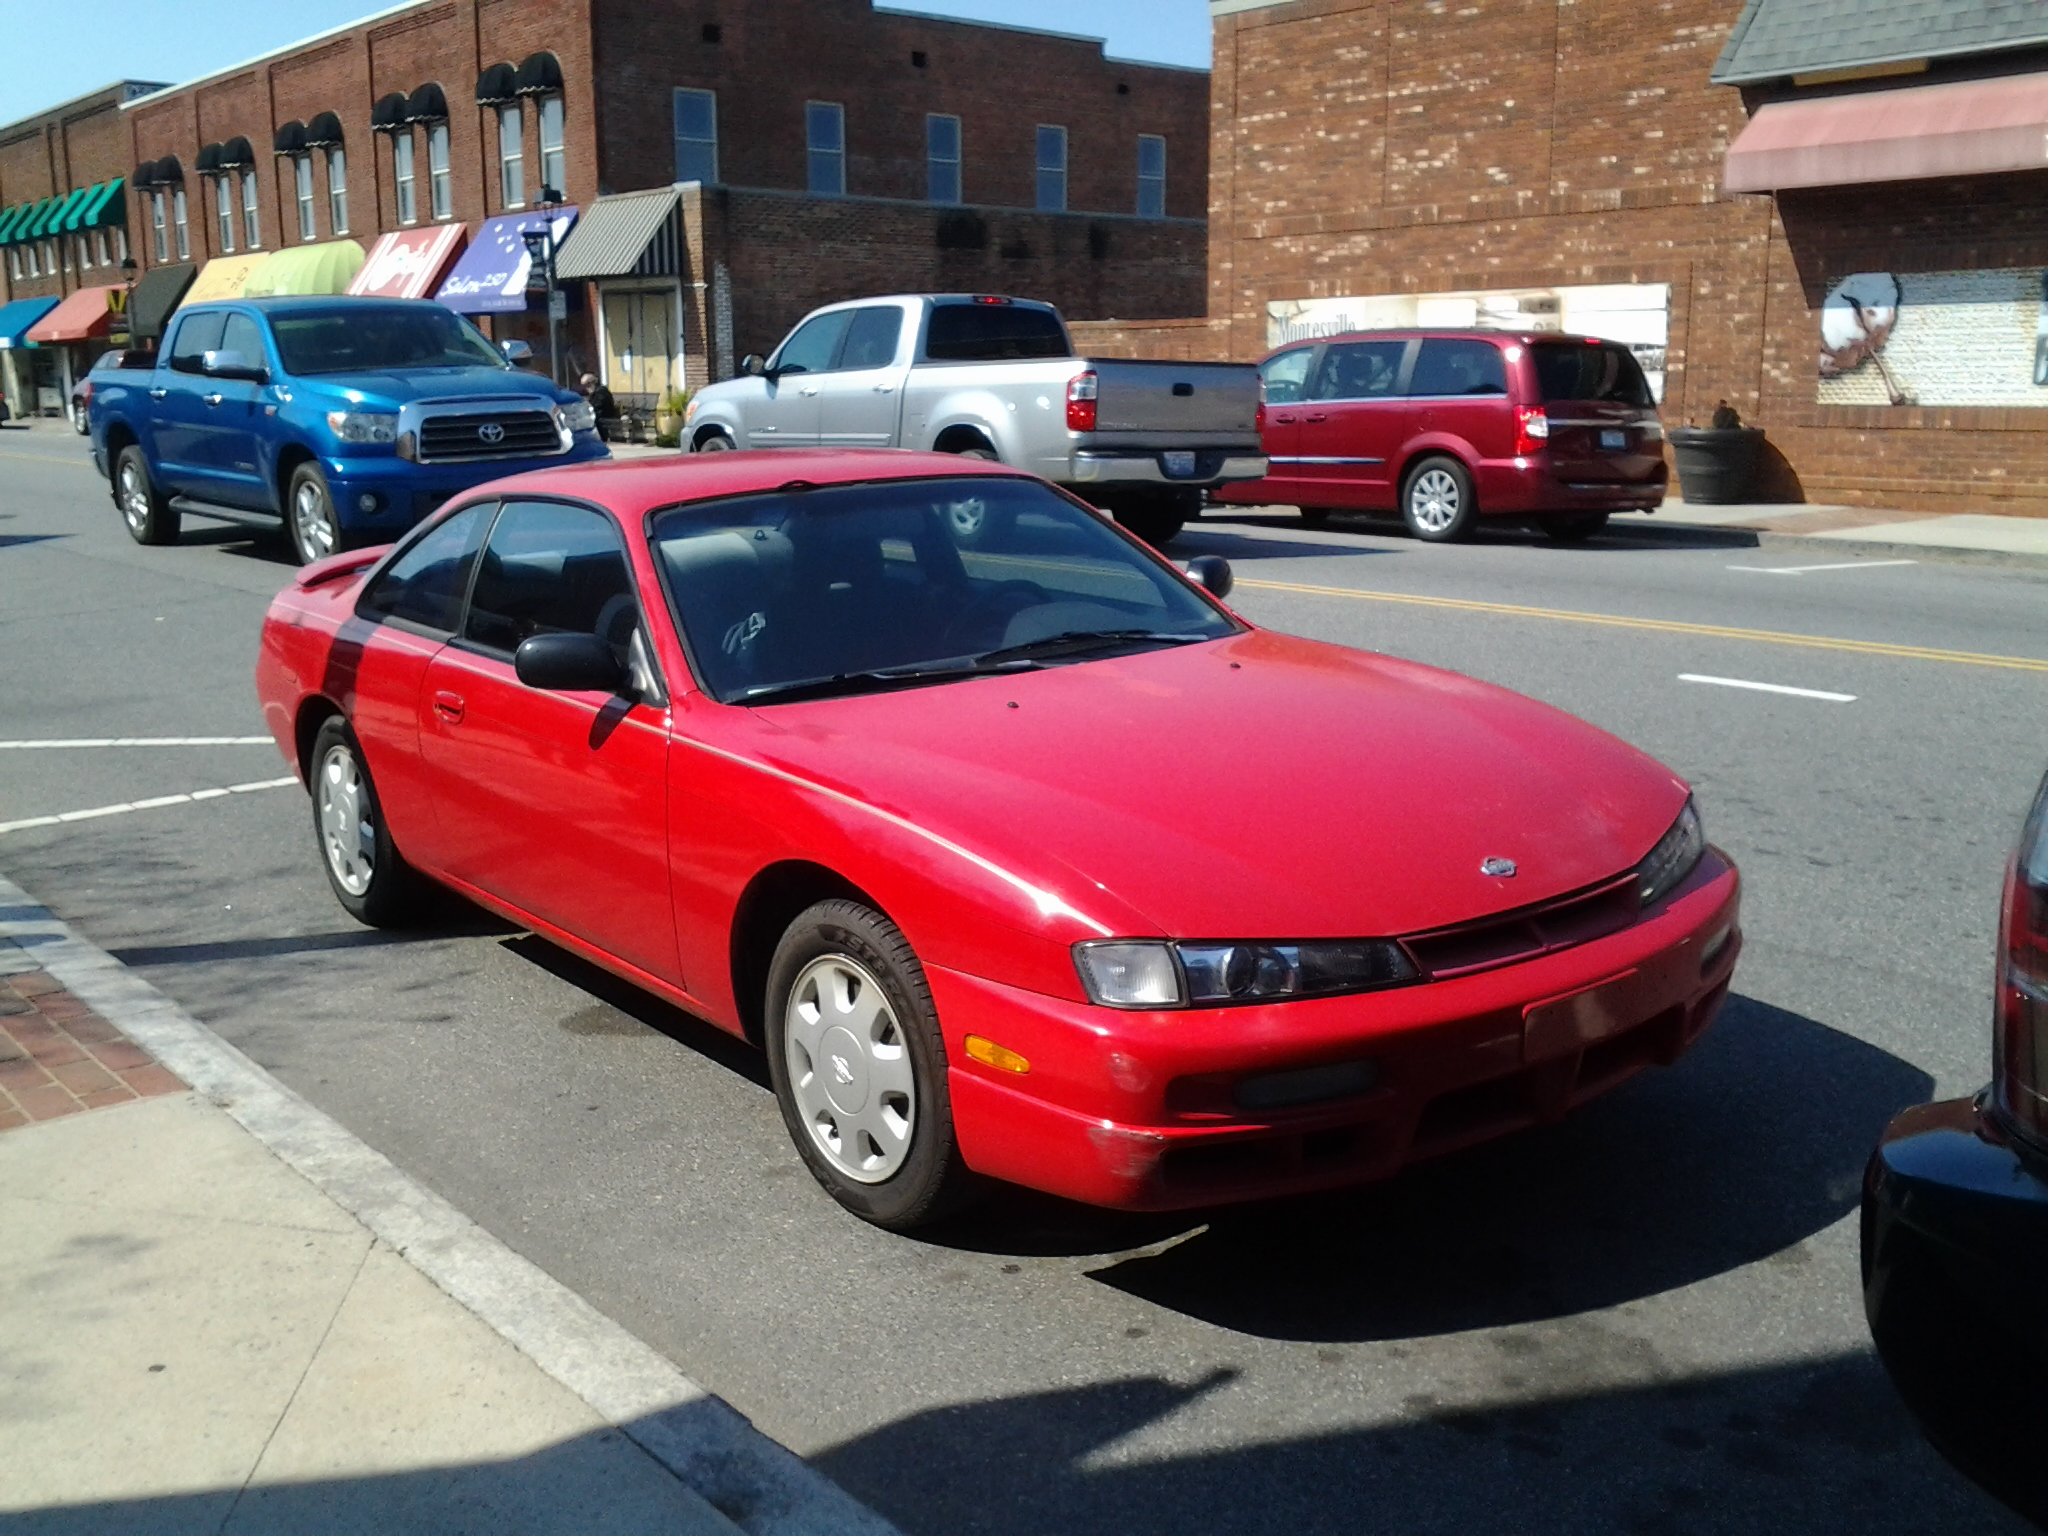 One of the rarest cars in the world.... a stock s14.